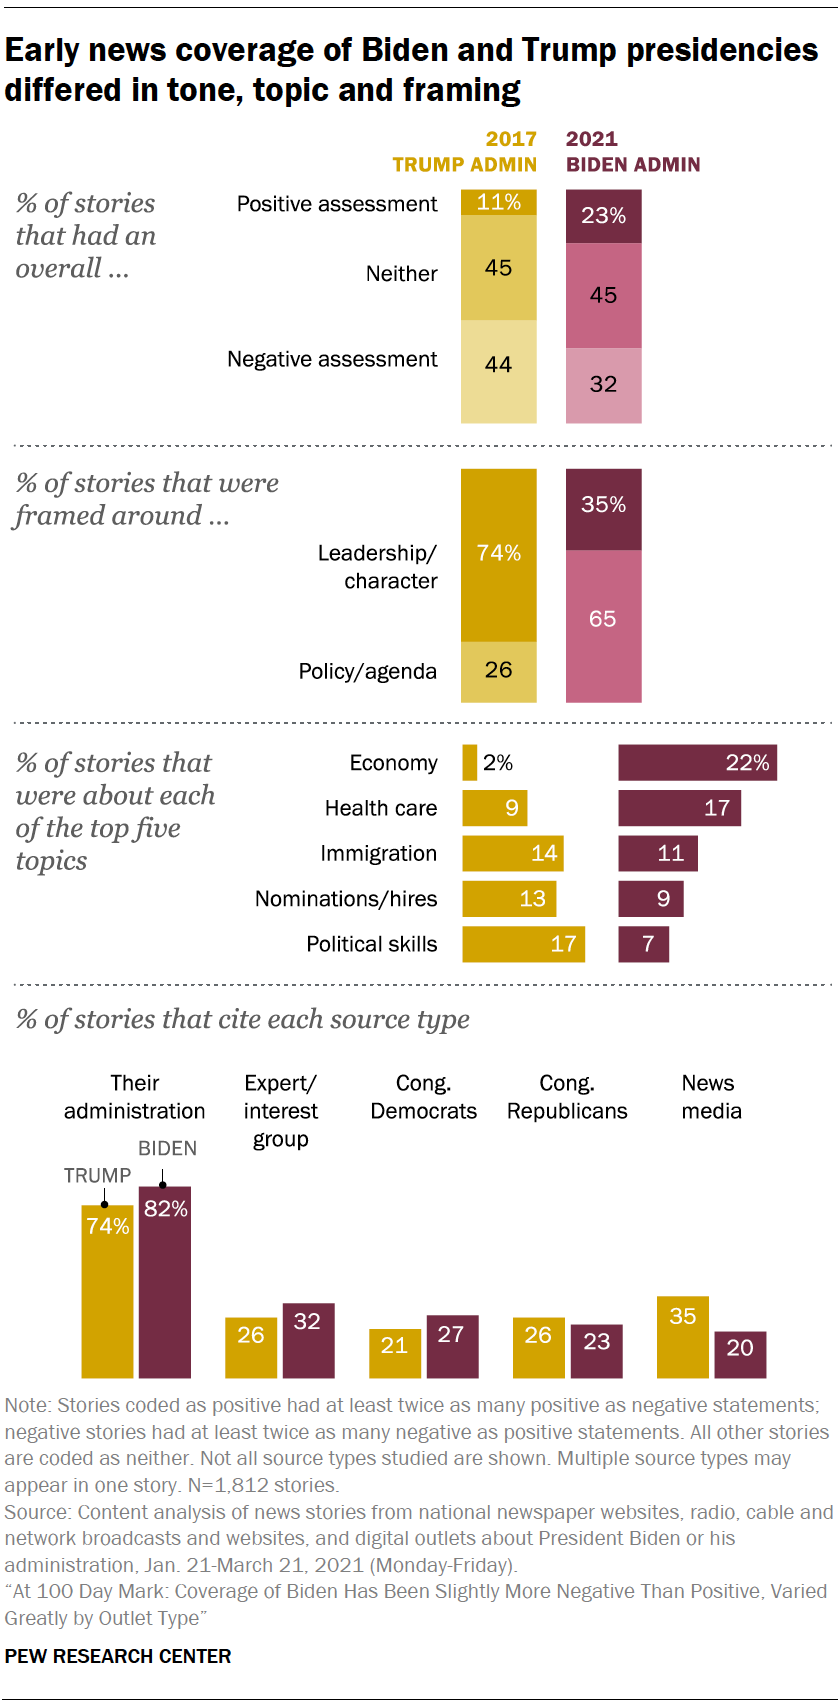 Early news coverage of Biden and Trump presidencies differed in tone, topic and framing